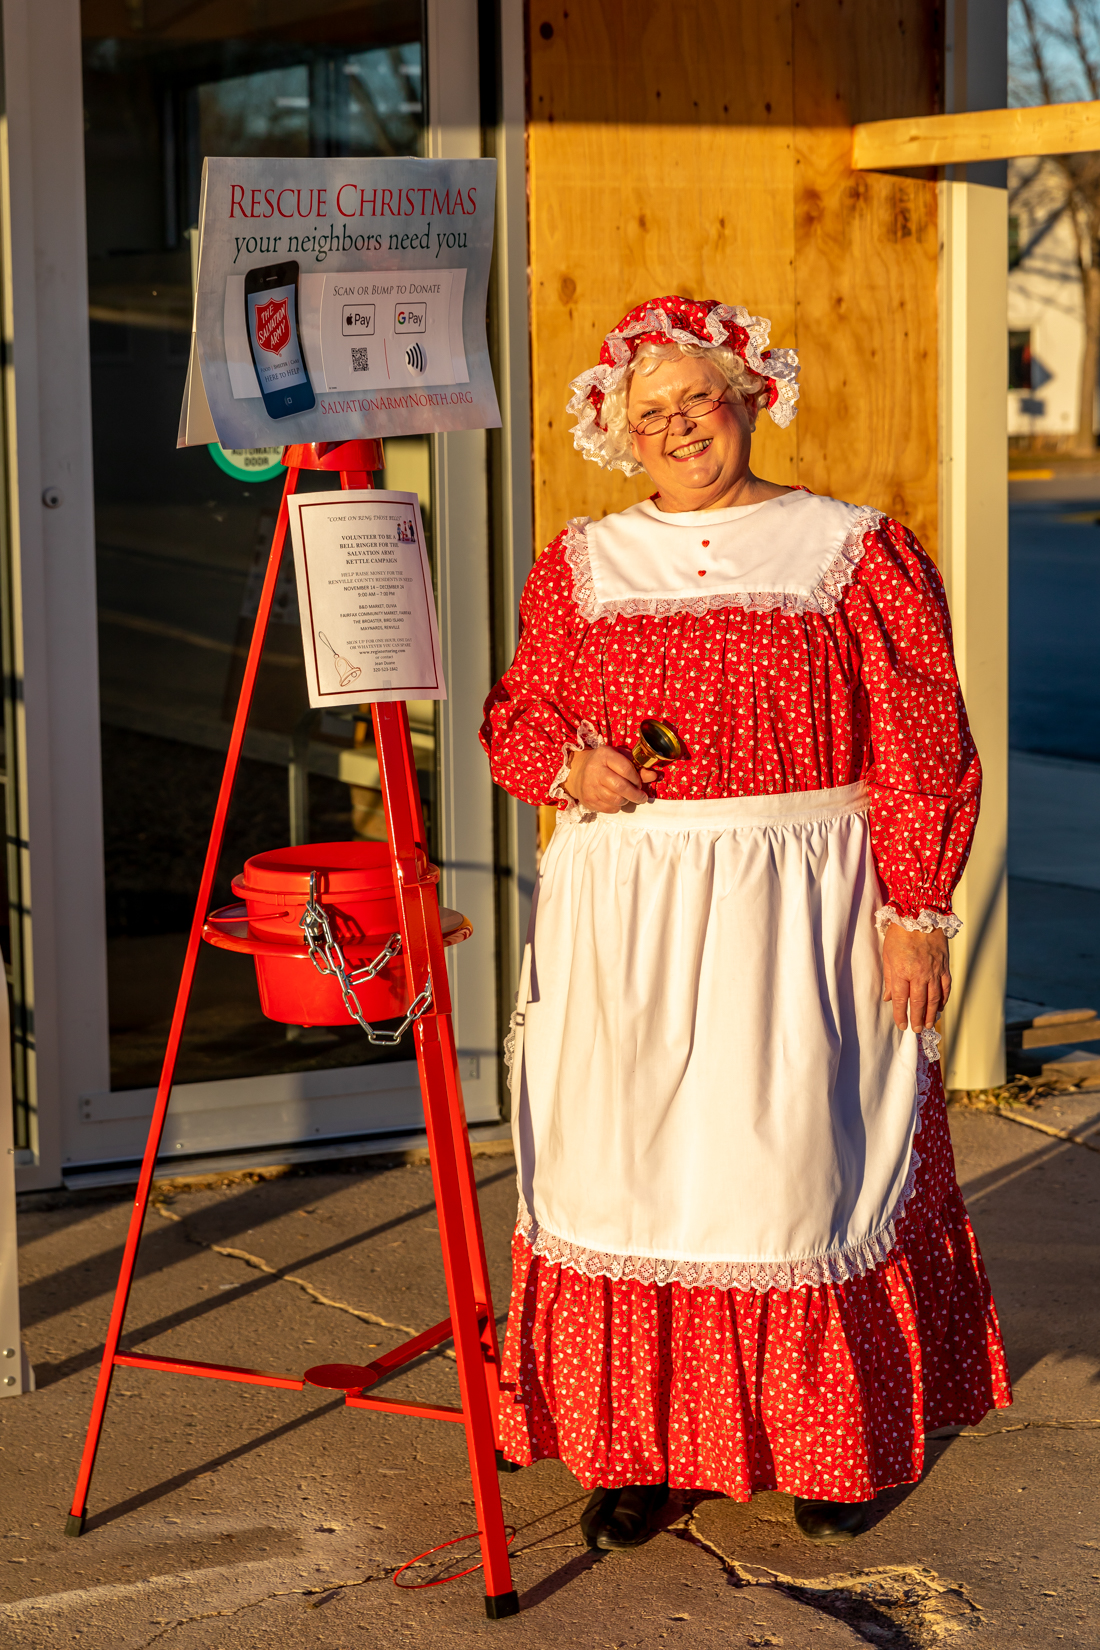 Before Santa arrived in town, Mrs. Claus could be seen ringing her bell at the Fairfax Community Market.